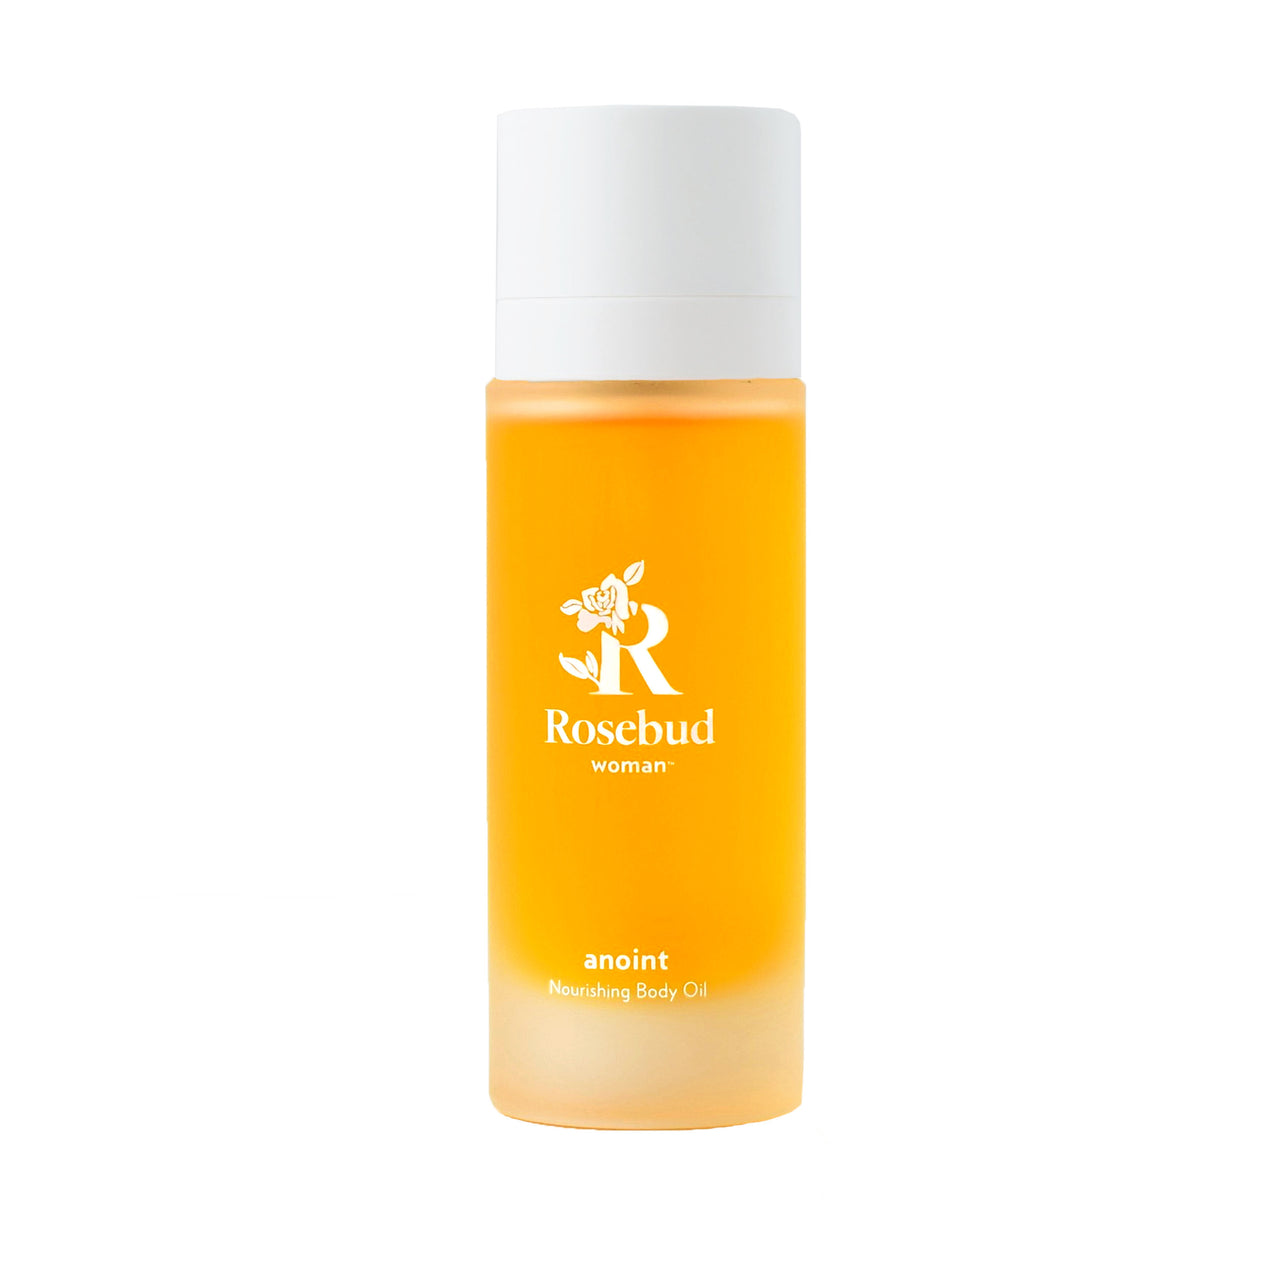 Anoint Nourishing Body Oil | Rosebud Woman